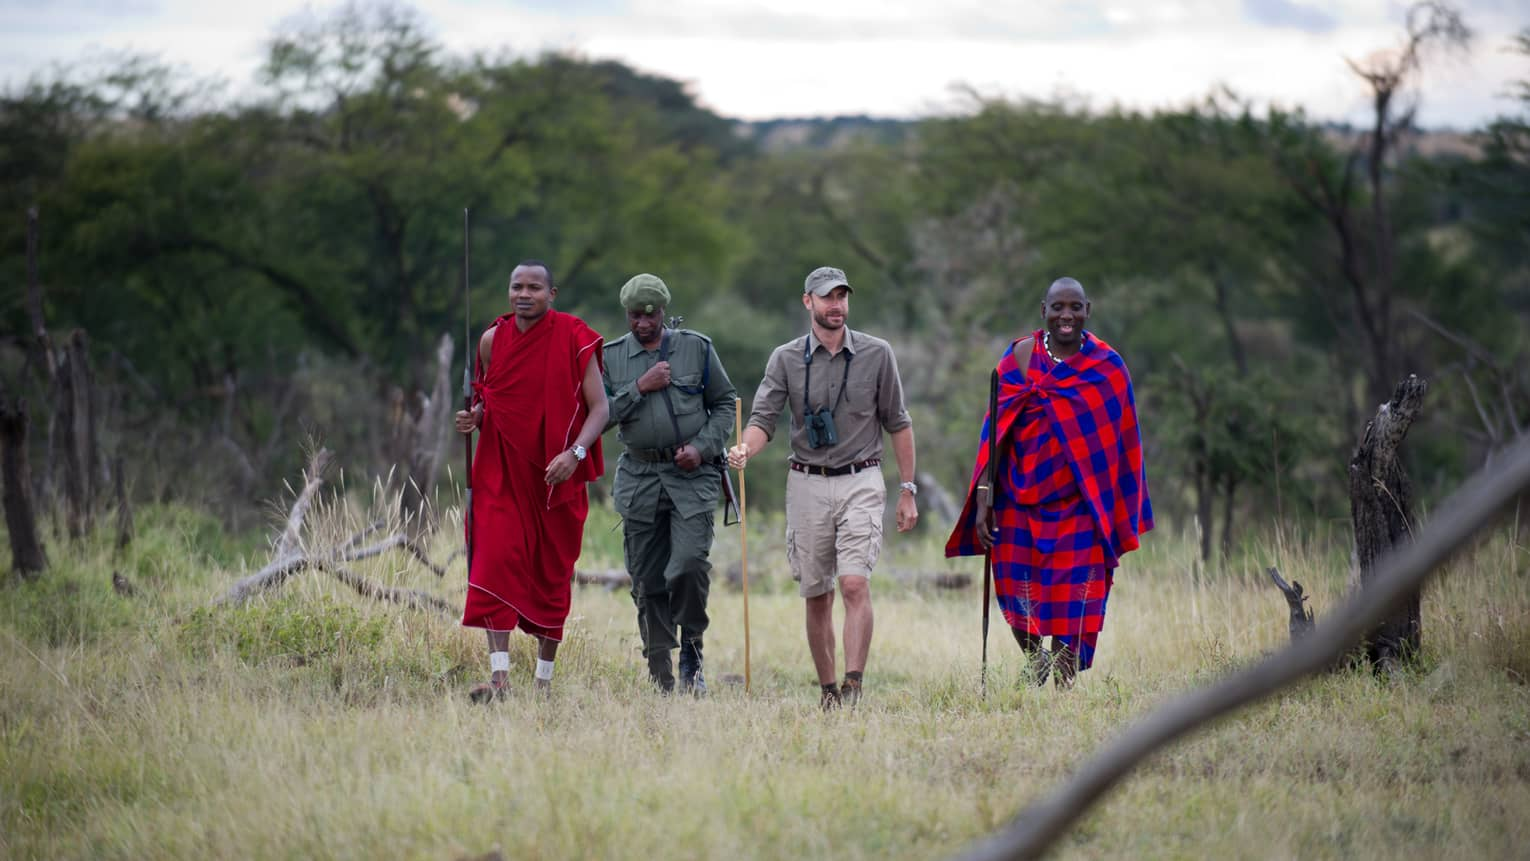 Resident naturalists and Masai guides with walking sticks trek through grass